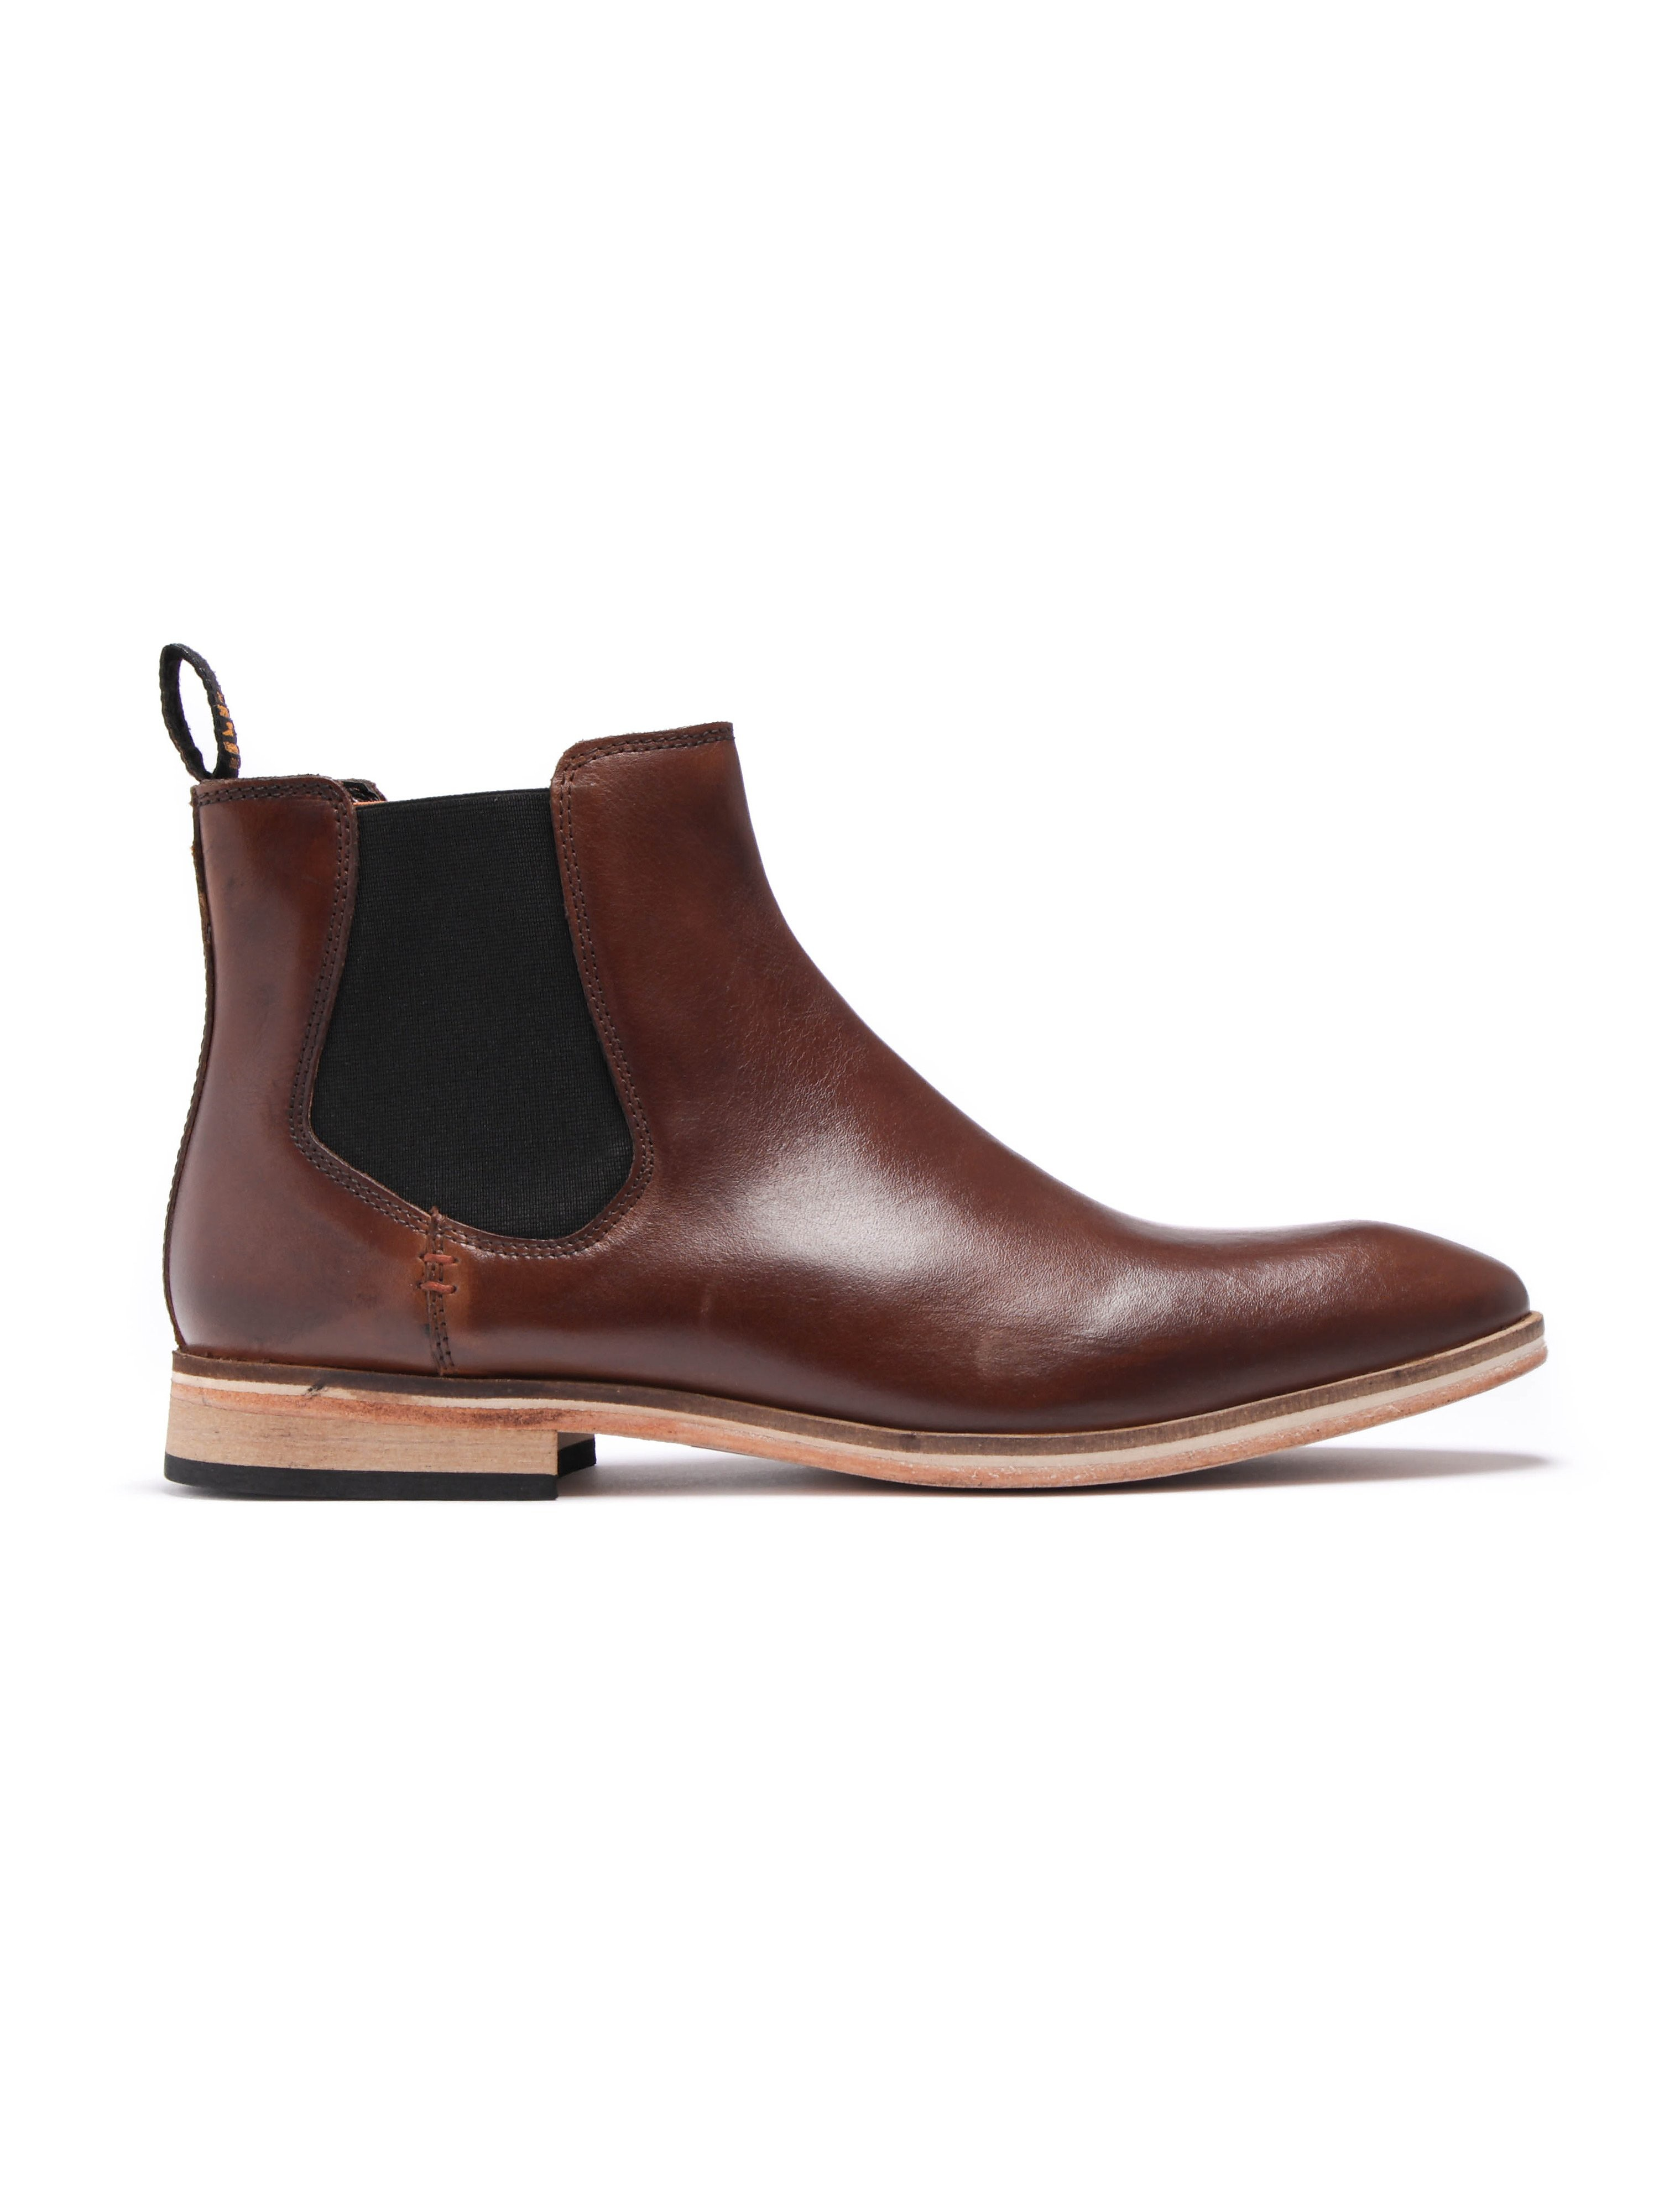 Superdry Premium Meteor Chelsea Boot - Brown